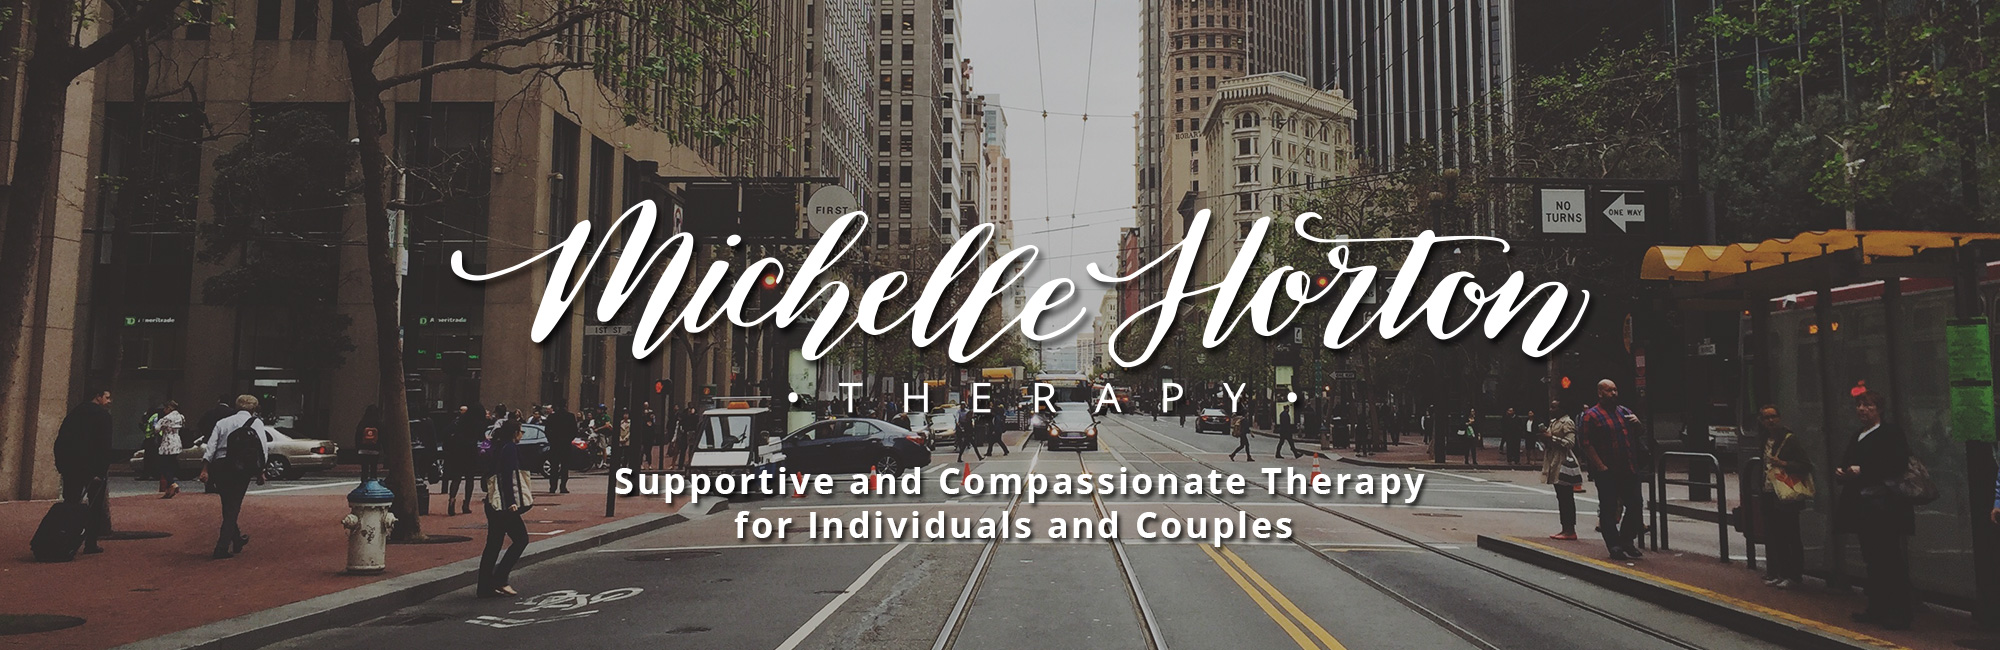 Michelle Horton Therapy MFT San Francisco